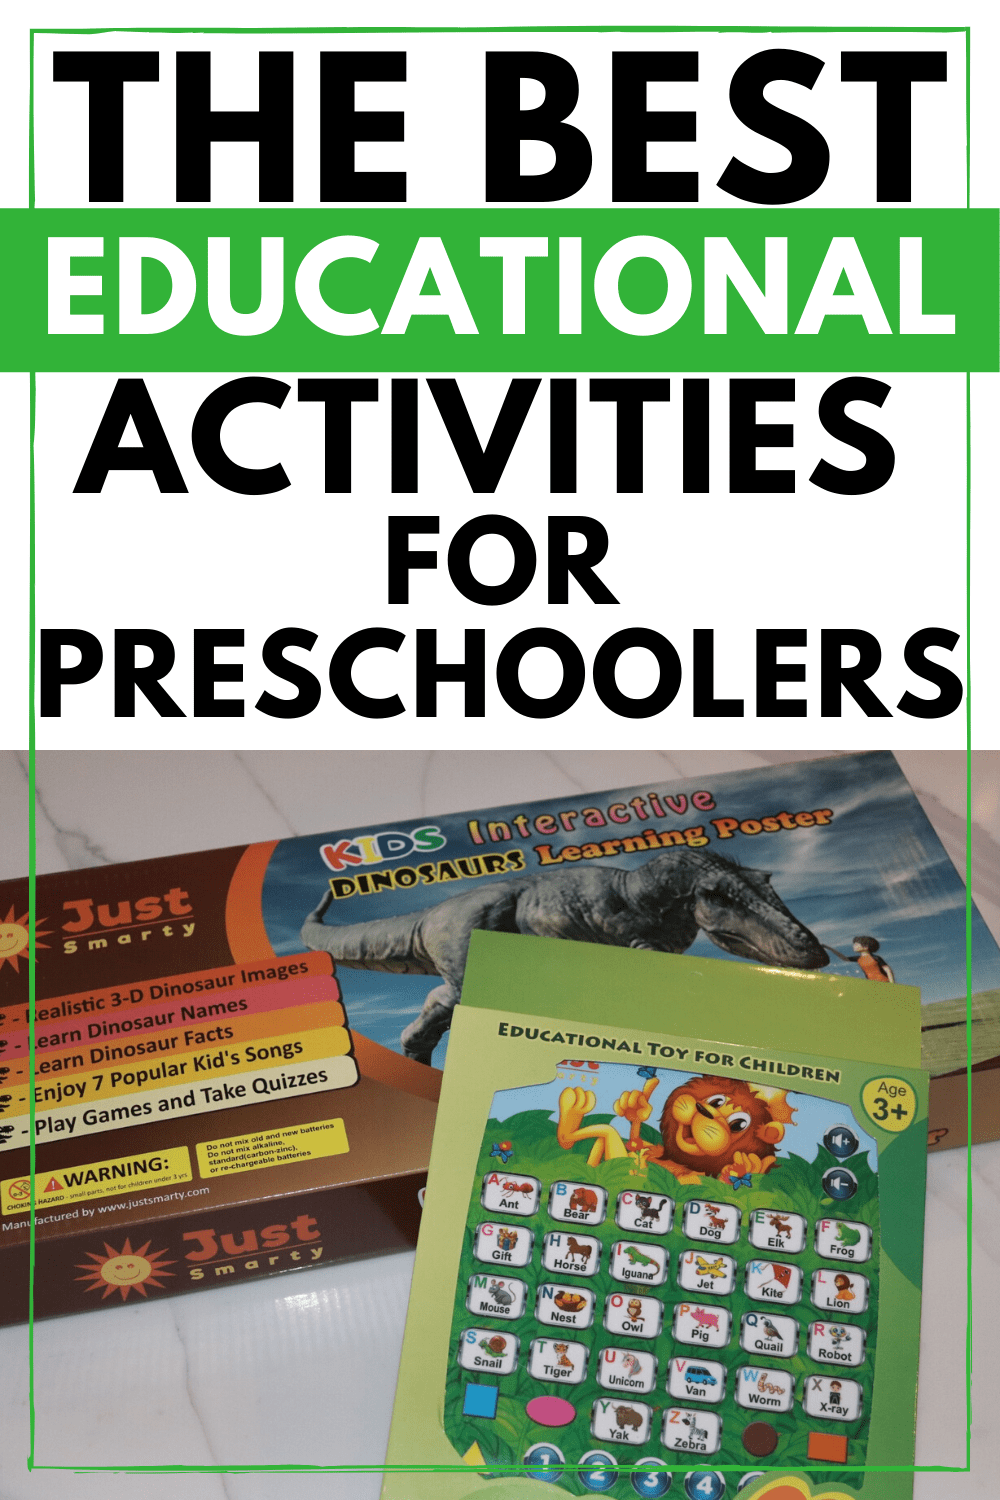 Best Educational Activities for Preschoolers